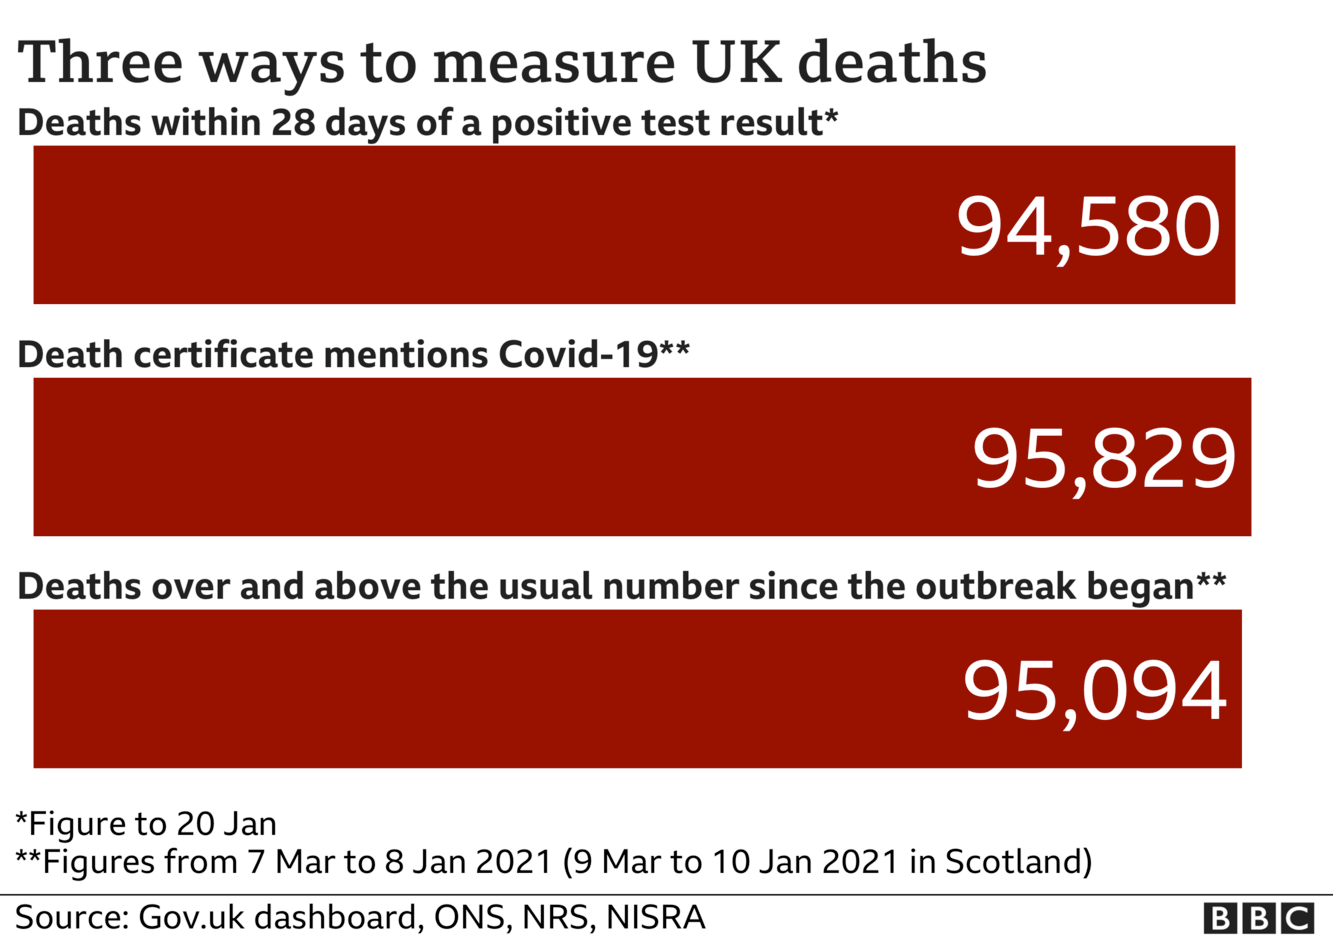 Chart showing three different totals for coronavirus deaths - the government measures all deaths within 28 days of a positive test, that total is 94,580. The ONS includes all deaths where coronavirus was mentioned on the death certificate, that total is 95,829 and the final total includes all deaths over and above the average for the time of year and that total is now 95,094